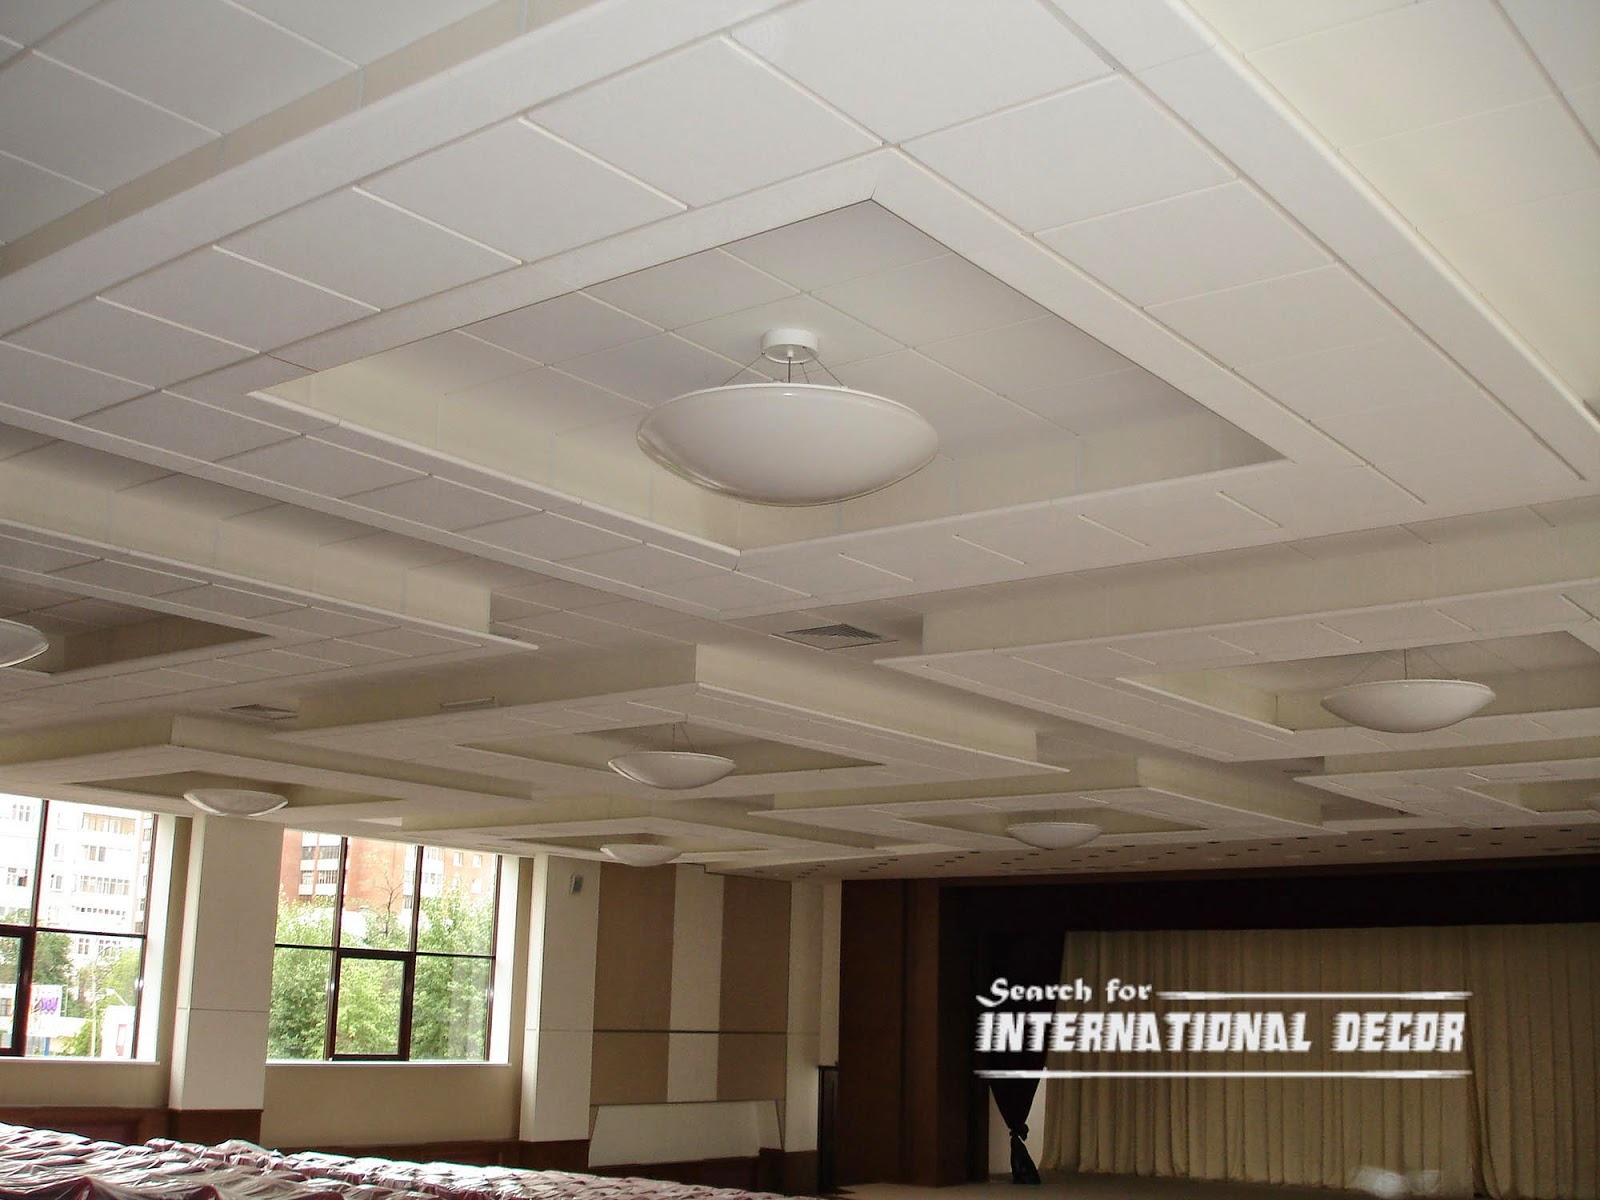 boral systems panels ensembe acoustical monolithic finish e ceilings en usg ensemble system ceiling and products sg tiles acoustic seamless